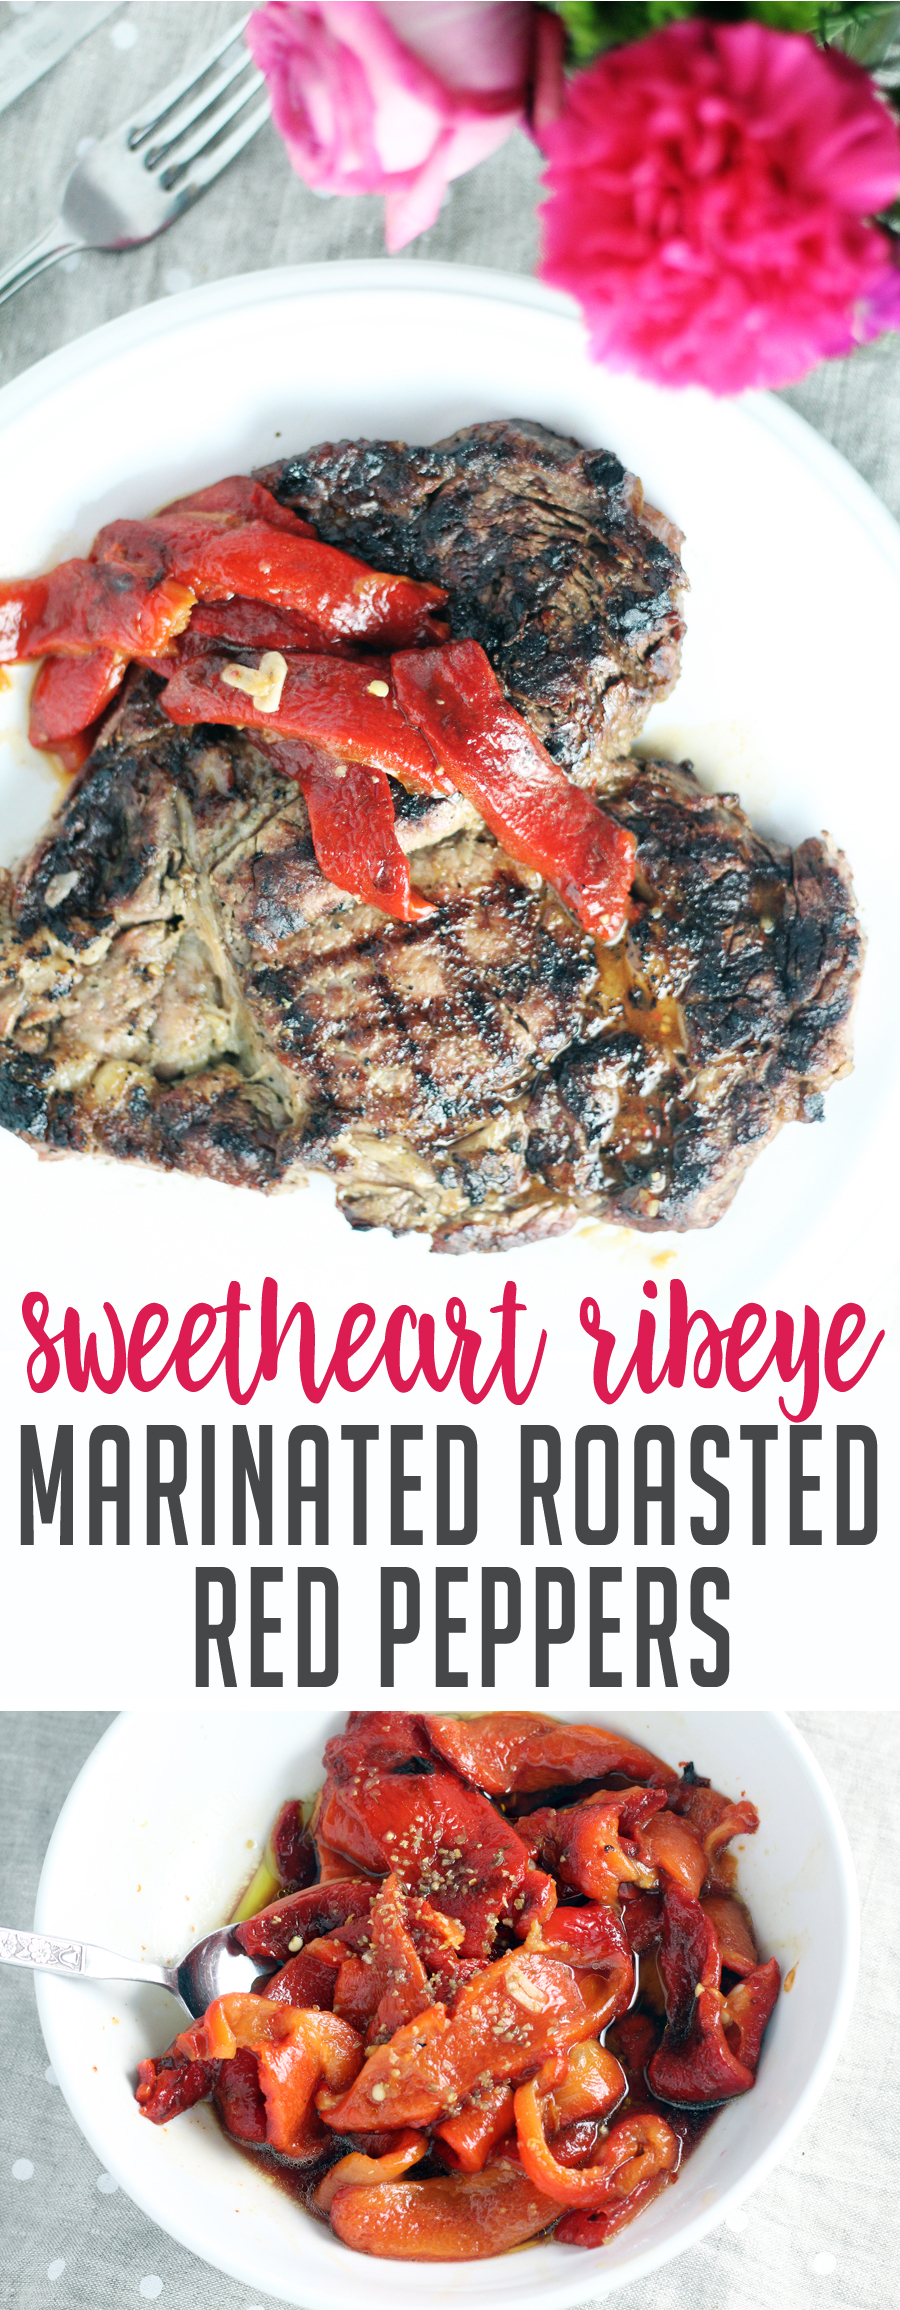 There's a way to a man's heart, ladies. It happens to be under this recipe for Marinated Roasted Red Peppers. That's right, a Sweetheart Ribeye.And let's be honest, this might be the way to a woman's heart, too, so pay attention.♡♡